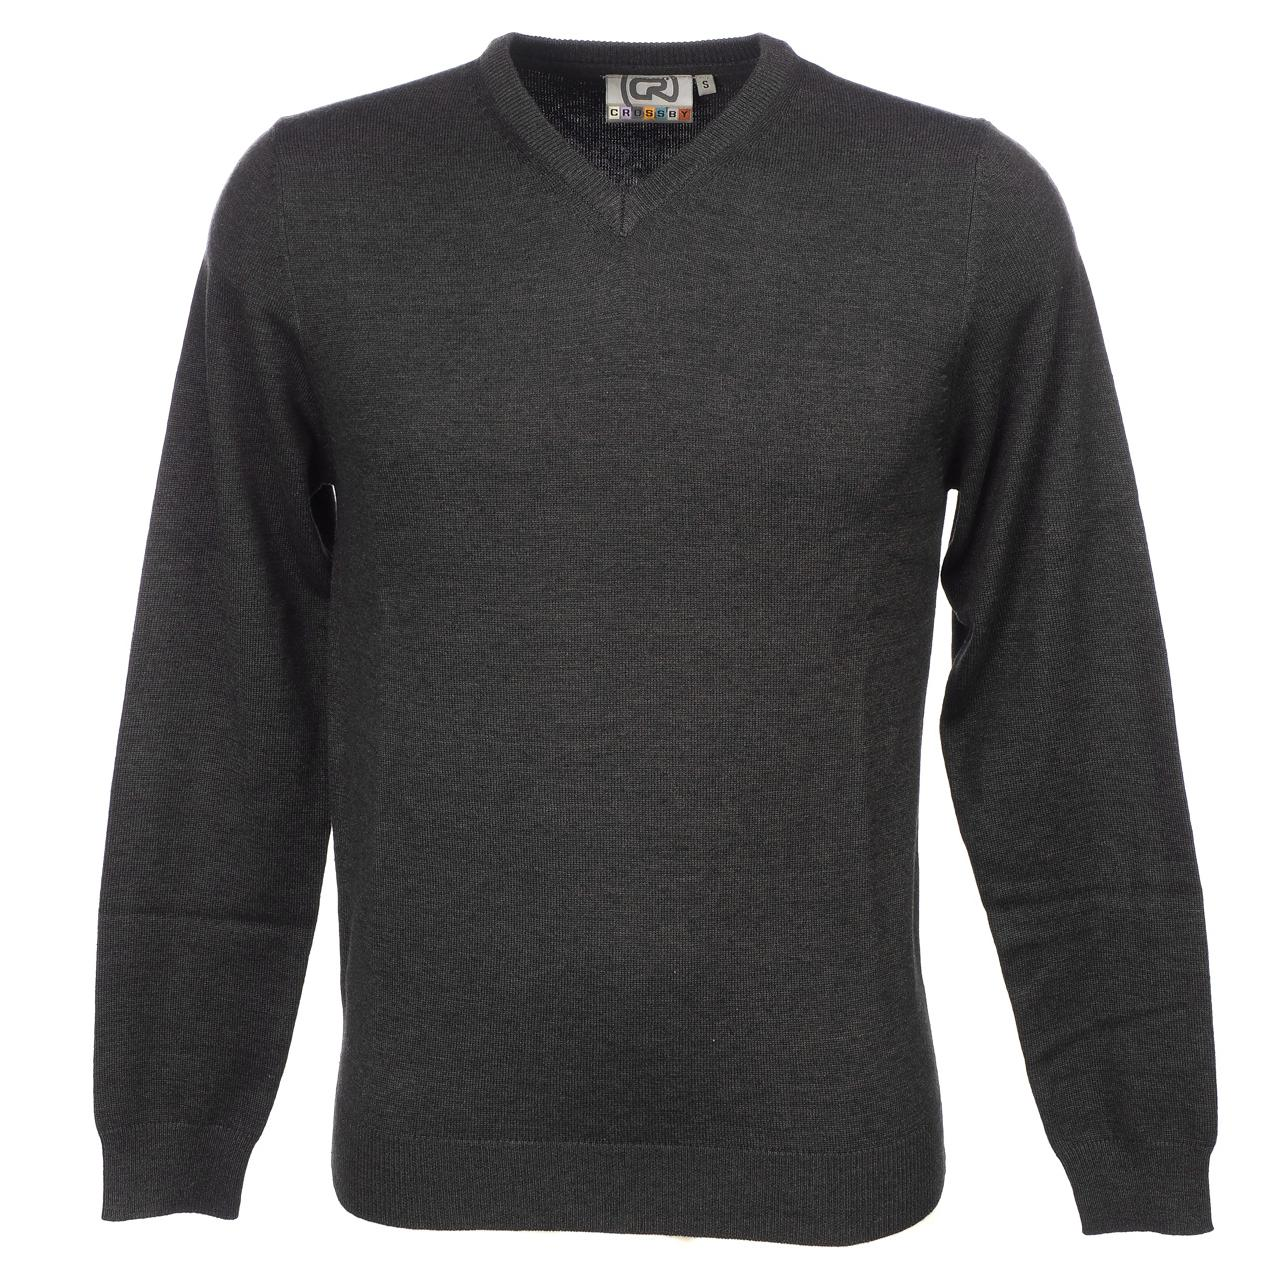 Sweater-Crossby-Twitt-Anc-V-Neck-Sweater-Grey-55732-New